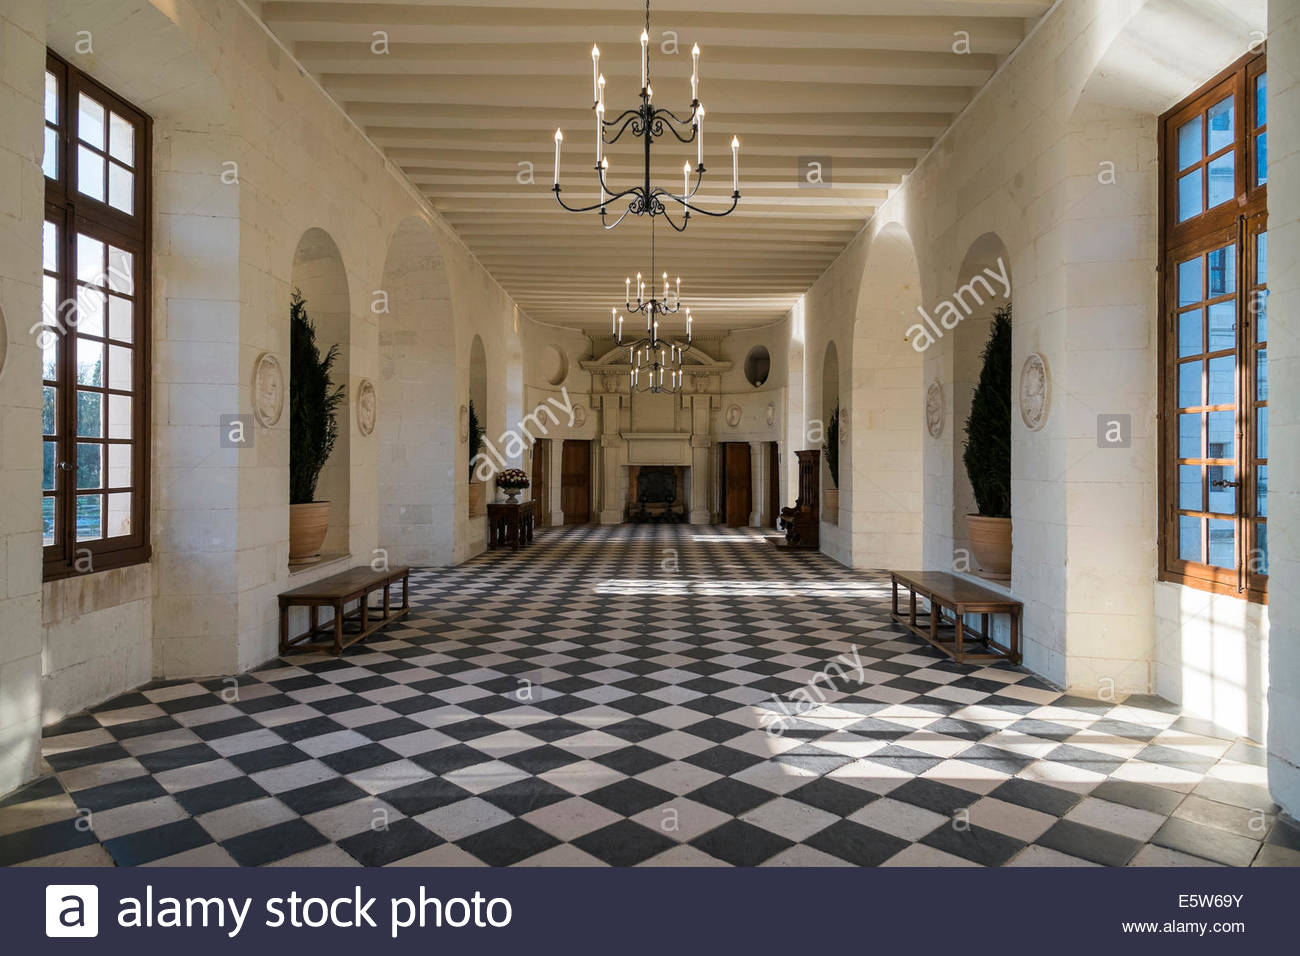 France Chateau Chenonceau Interior Stockfotos & France Chateau ...